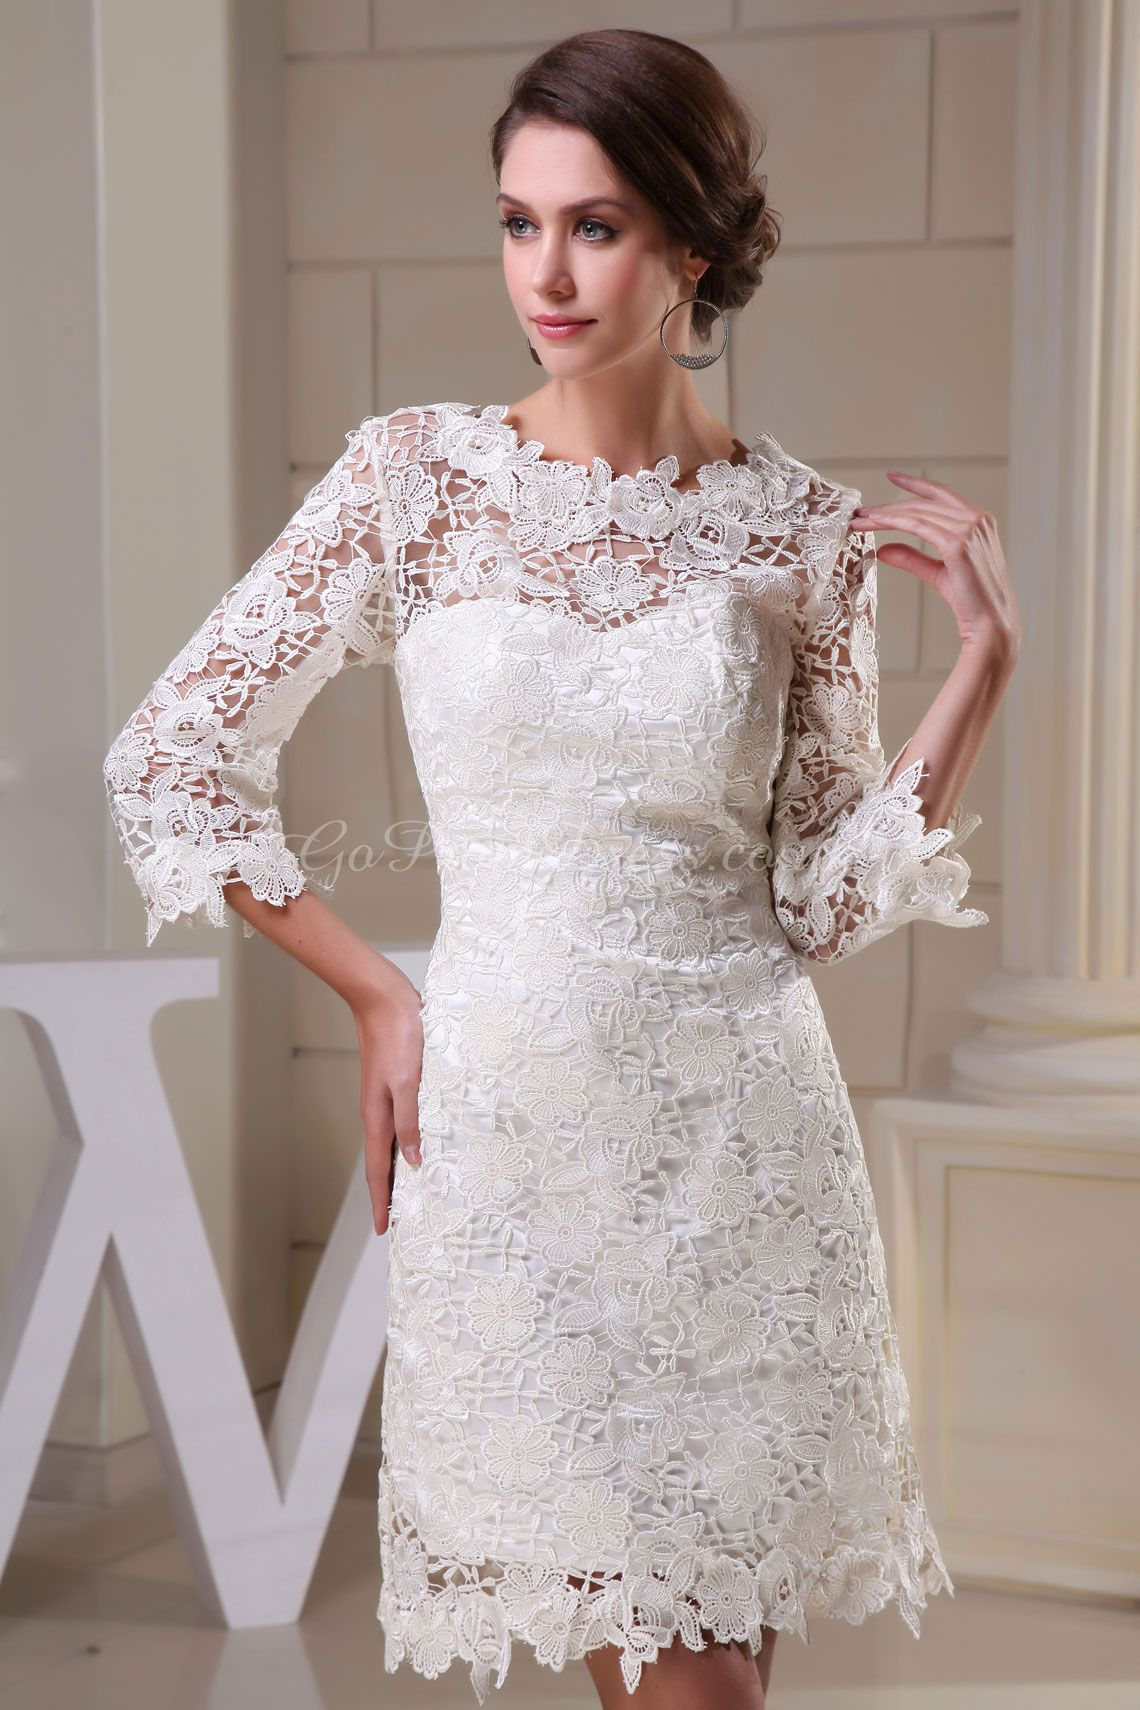 Mini white wedding dress  Sheath Lace Jewel Neck  Length Sleeve KneeLength White Wedding